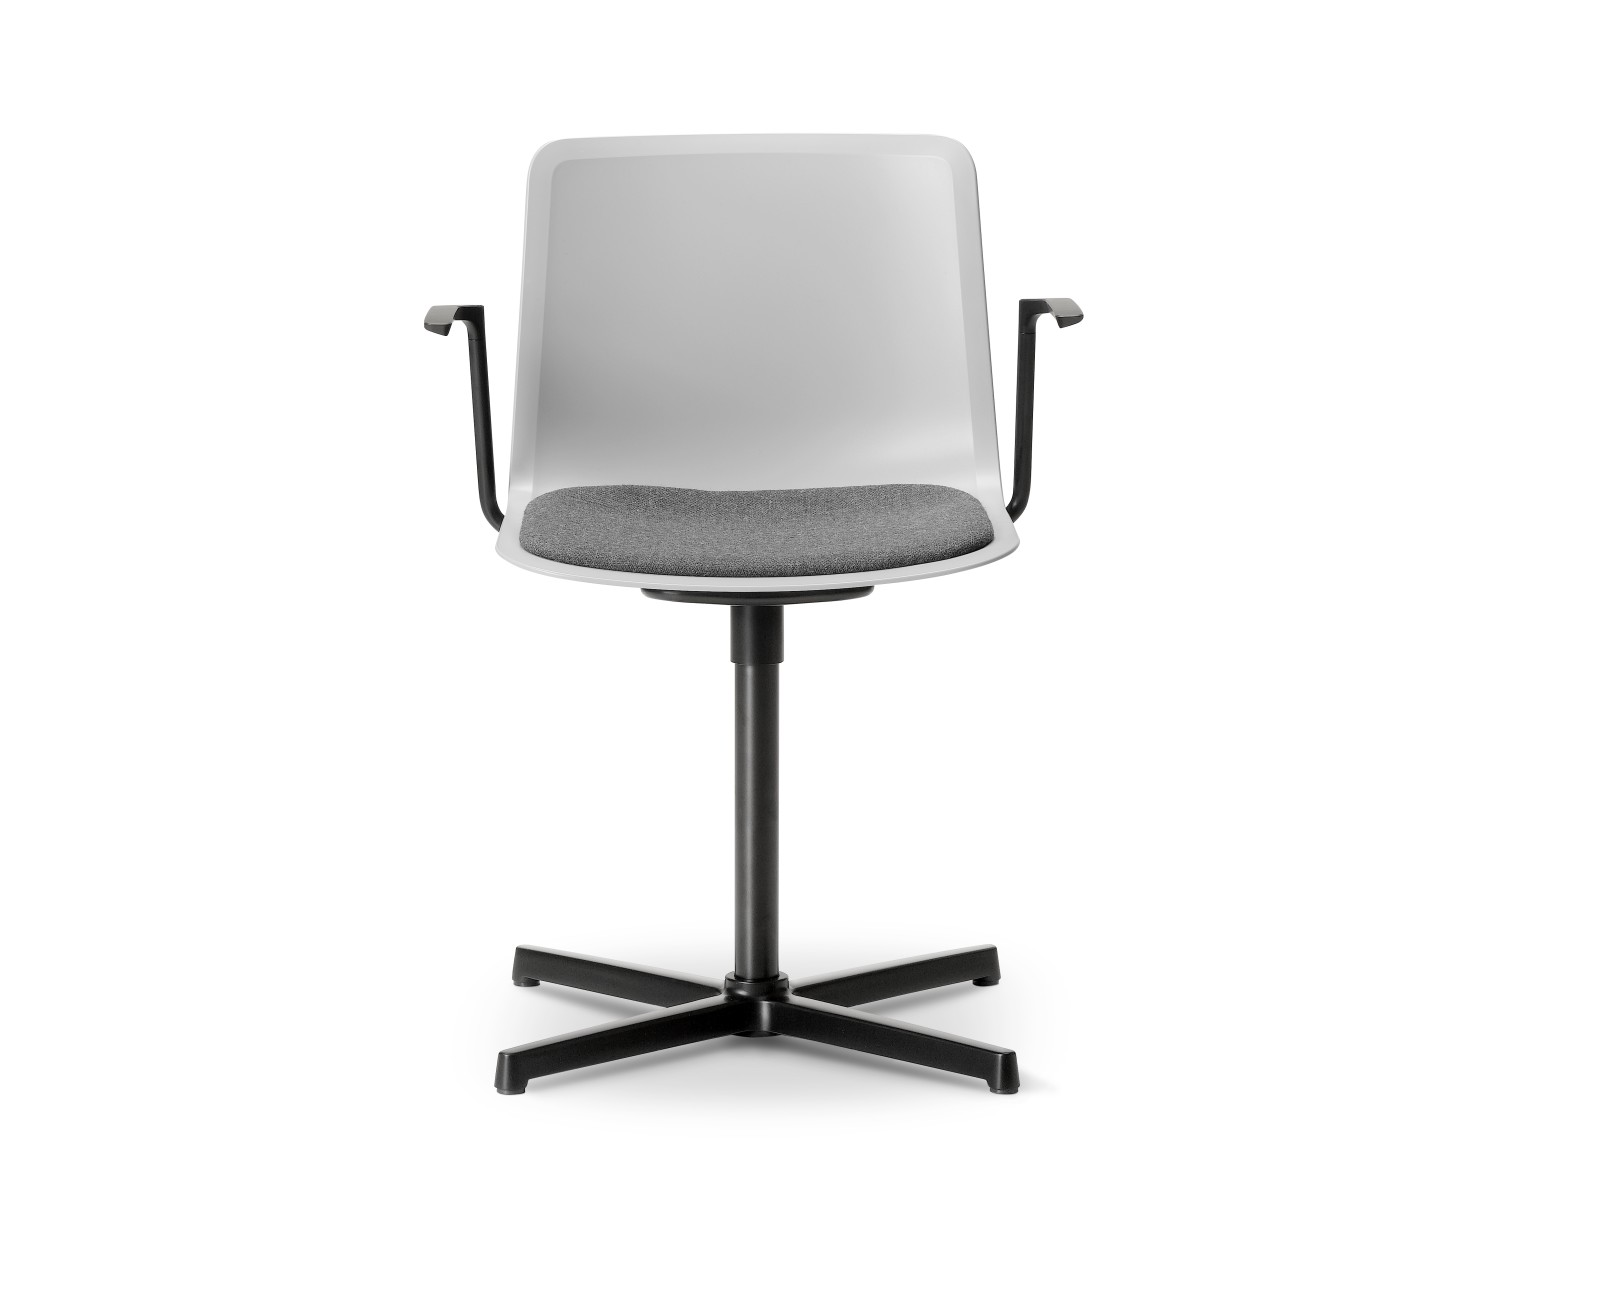 Pato Swivel Armchair with Seat Upholstery Chrome Steel, Quartz grey, Remix 2 143